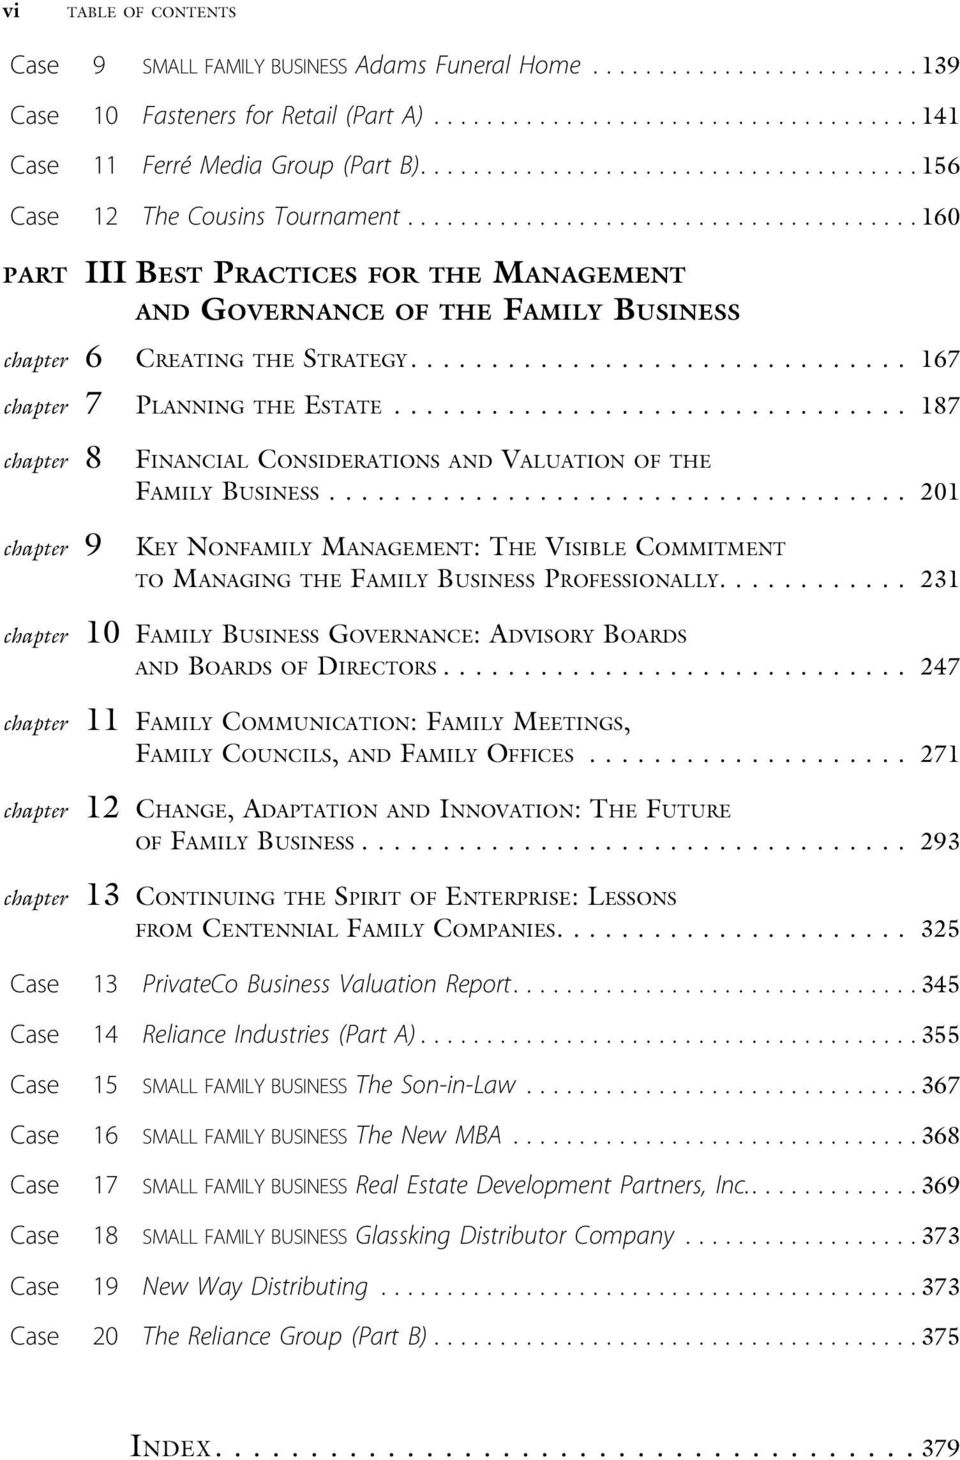 .. 187 chapter 8 FINANCIAL CONSIDERATIONS AND VALUATION OF THE FAMILY BUSINESS... 201 chapter 9 KEY NONFAMILY MANAGEMENT: THE VISIBLE COMMITMENT TO MANAGING THE FAMILY BUSINESS PROFESSIONALLY.